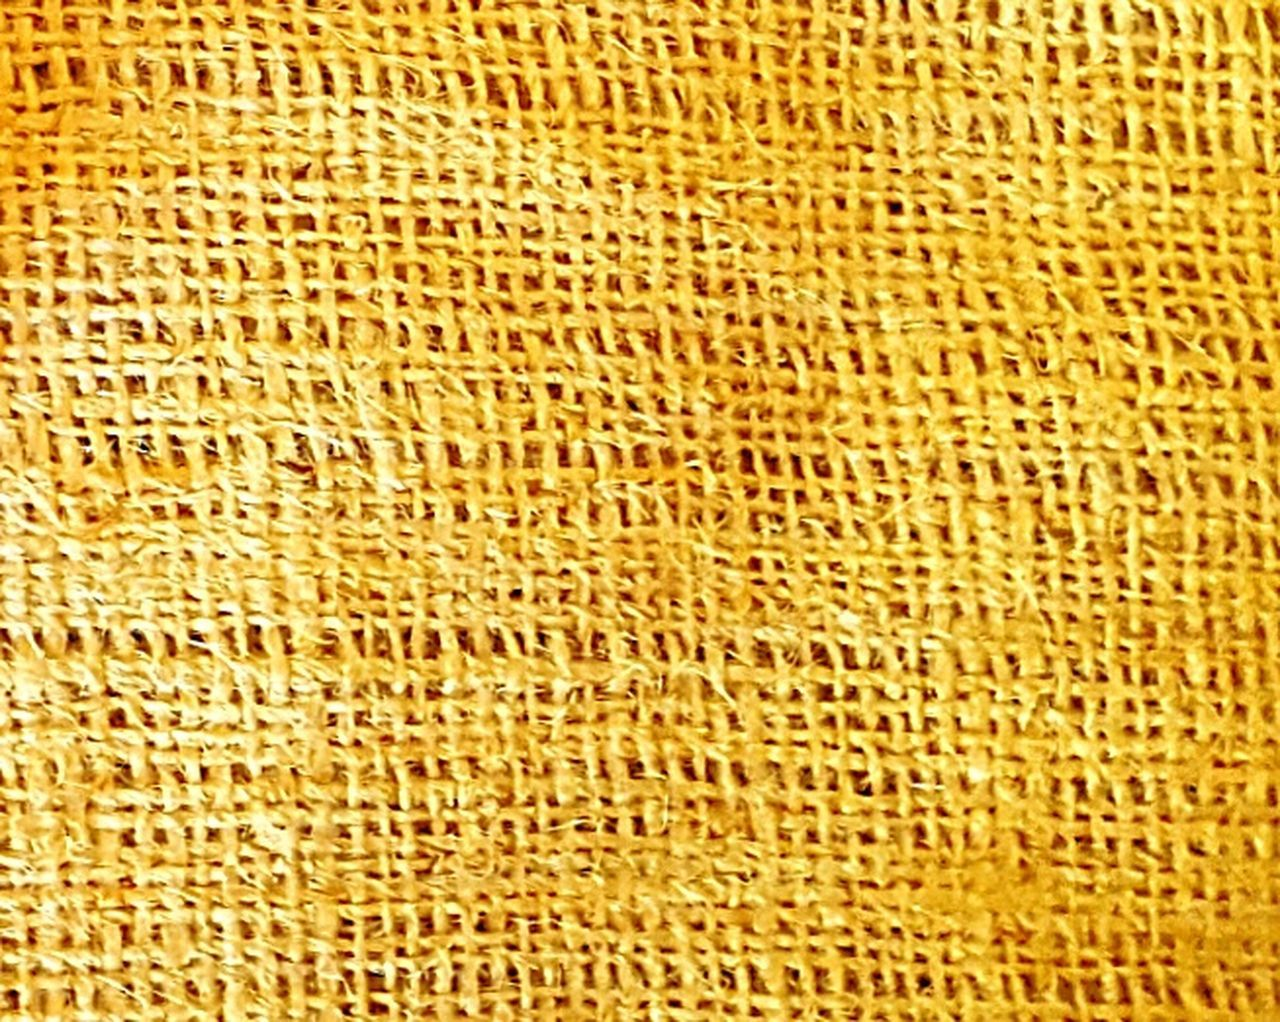 backgrounds, textured, full frame, yellow, pattern, material, textured effect, abstract, textile, close-up, no people, fiber, day